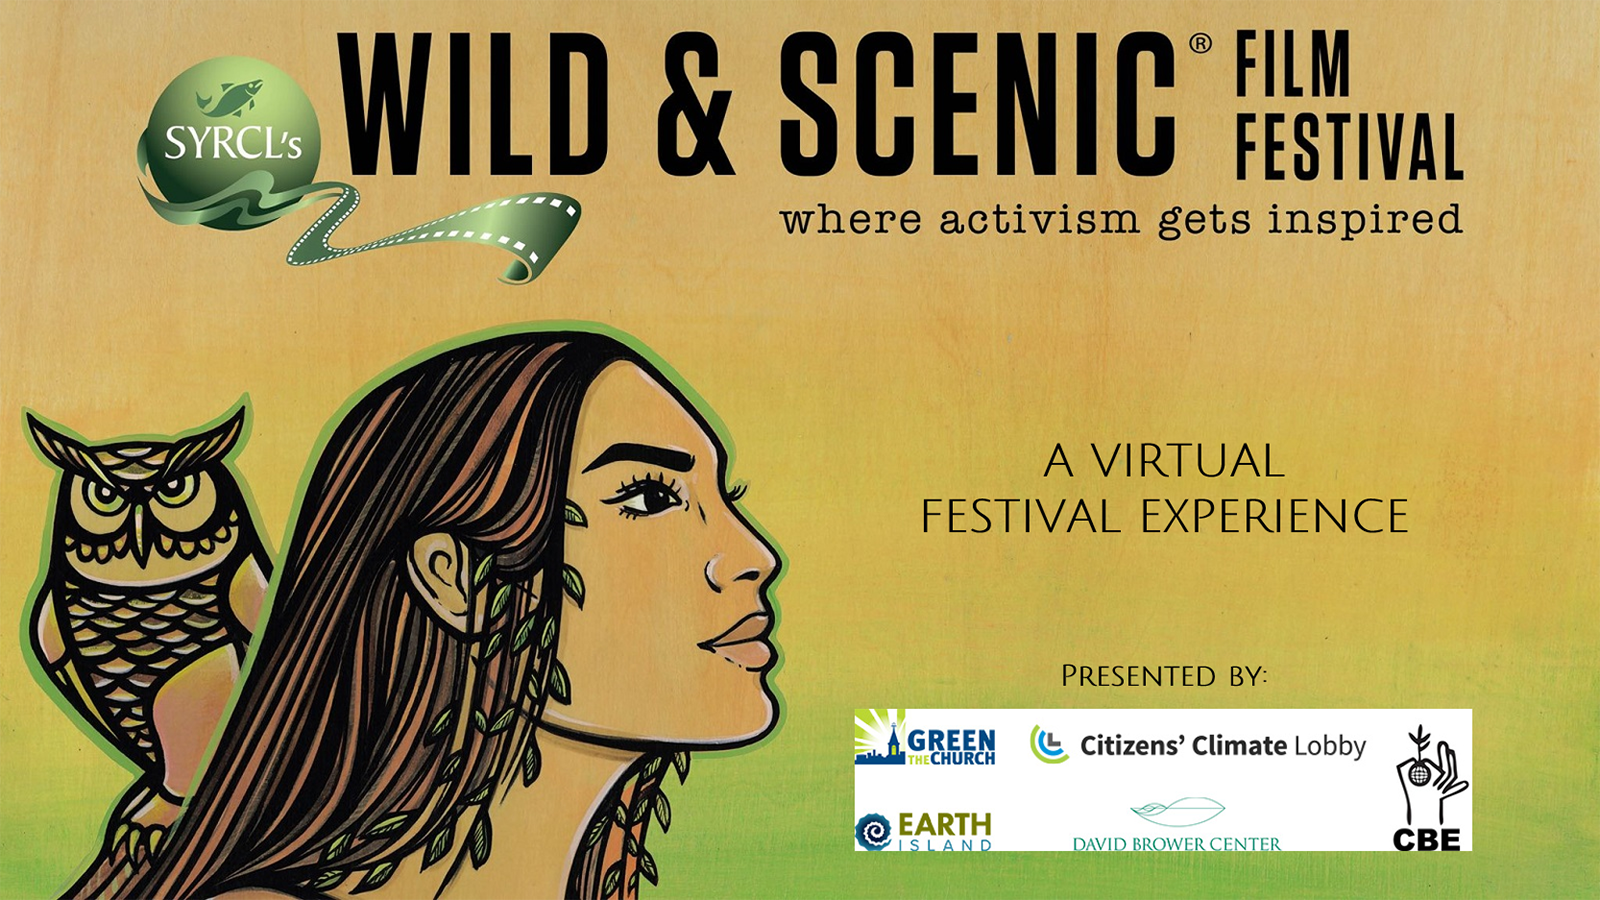 Citizens' Climate Lobby Presents SYRCL's Wild & Scenic Film Festival On Tour